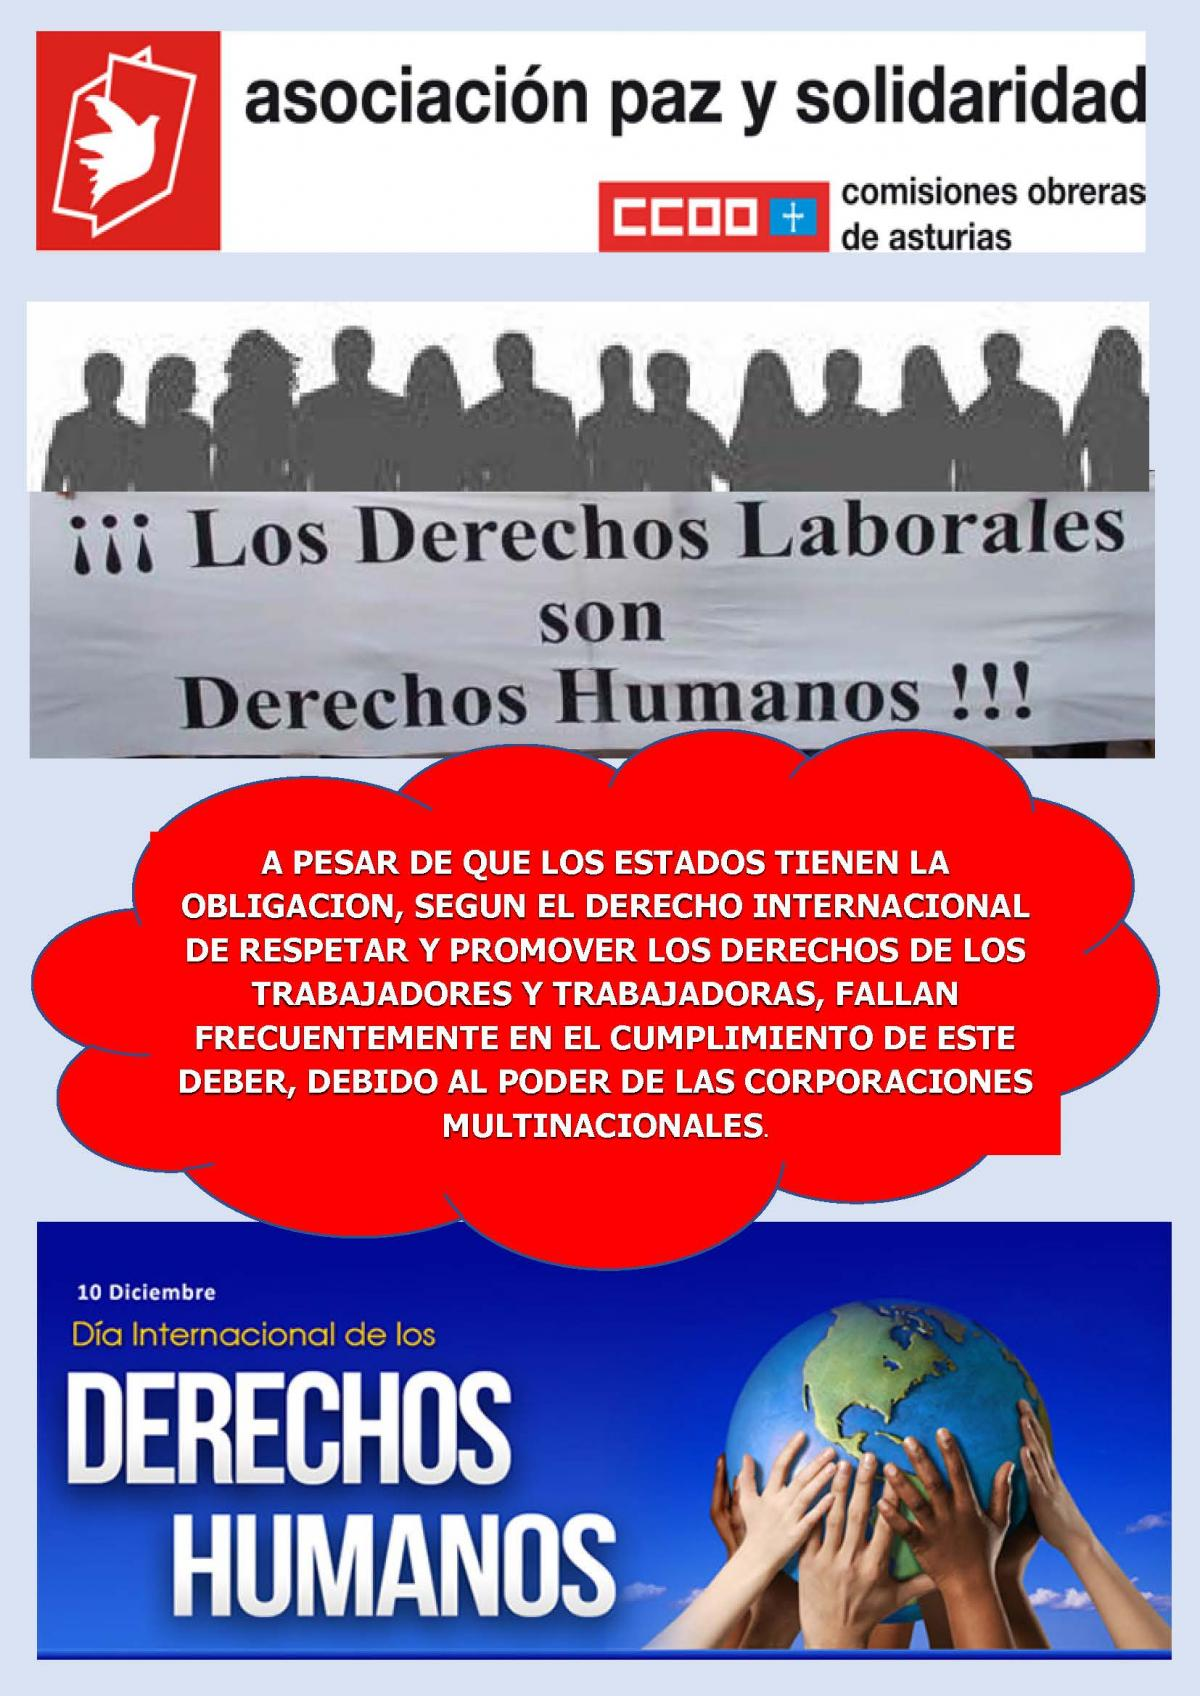 SOLIDARIDAD EN LA DEFENSA DE LOS DDHH PARA TODAS LAS PERSONAS A NIVEL GLOBAL